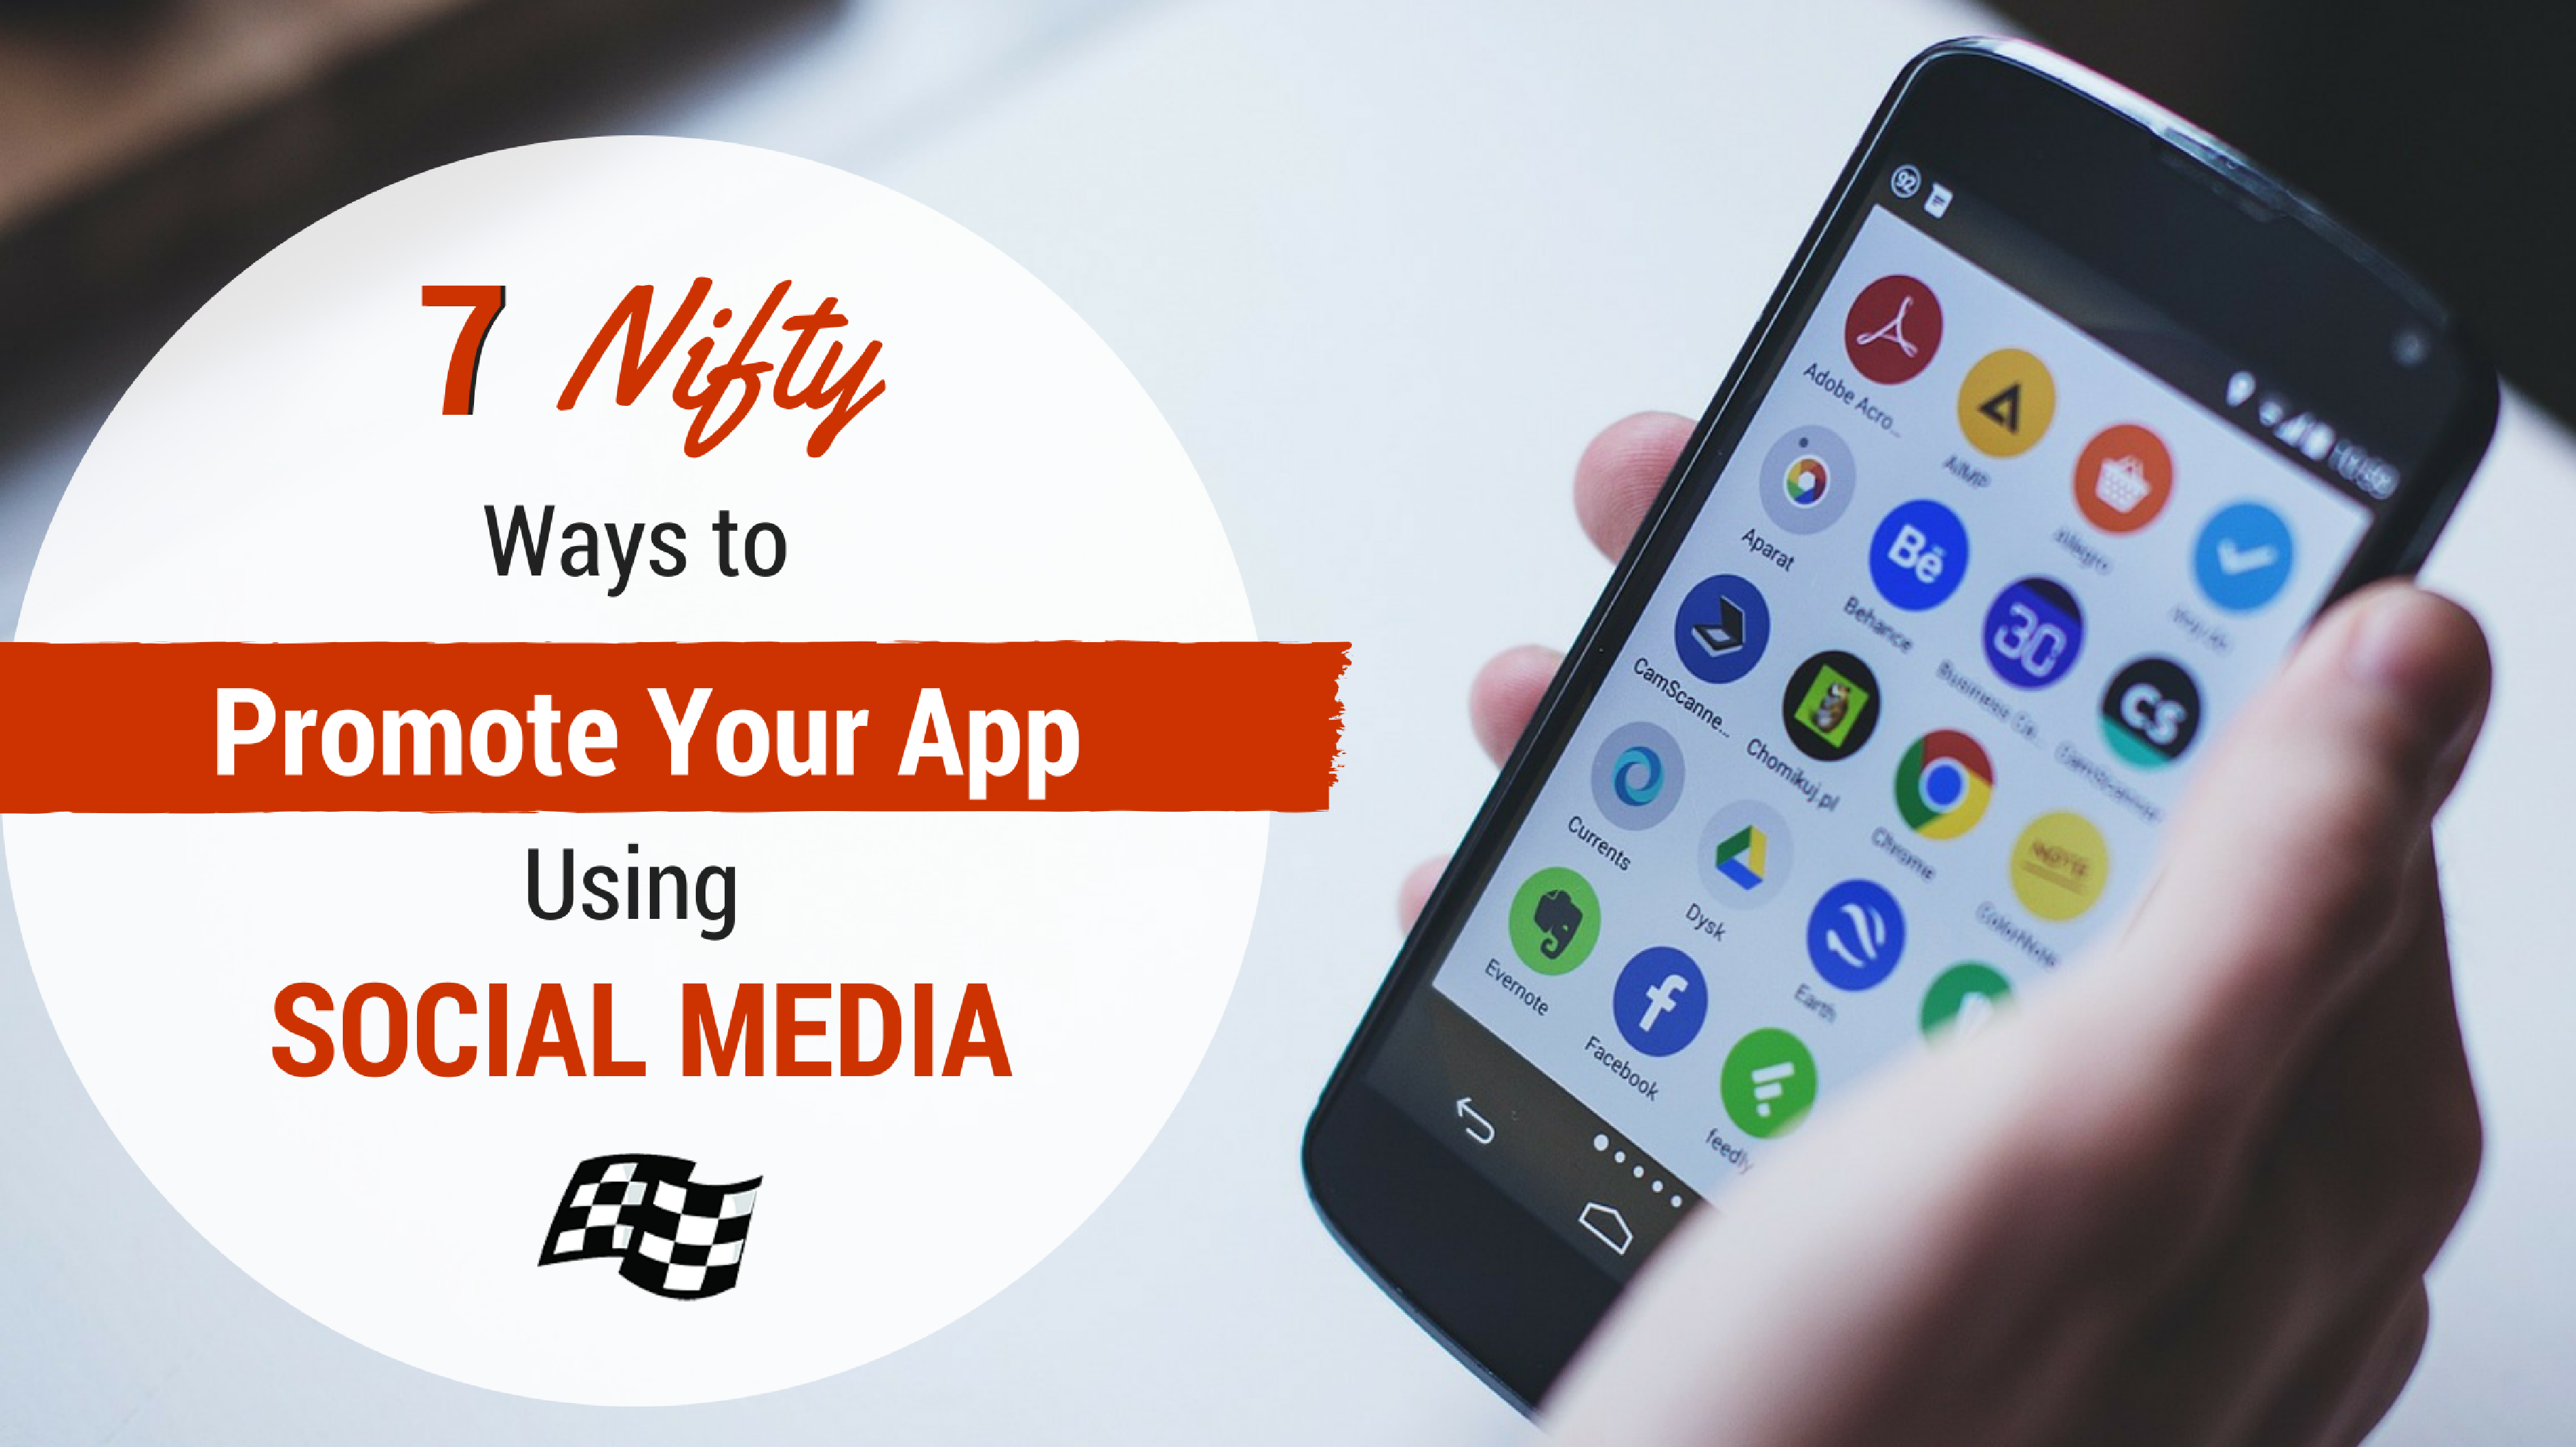 7 Nifty Ways to Promote Your App Using Social Media